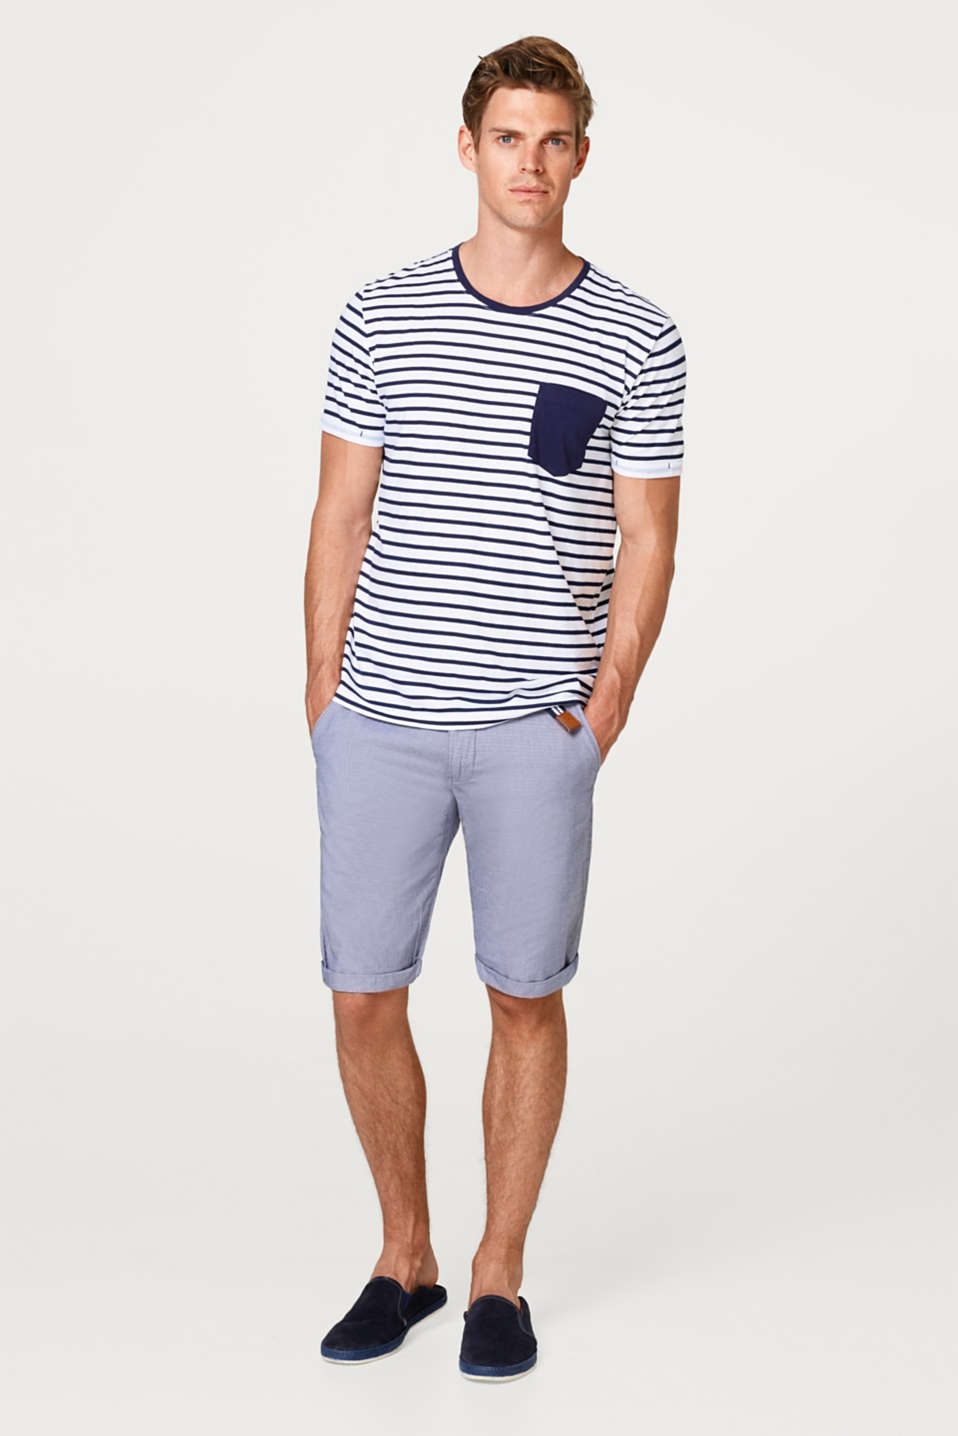 Bermuda shorts with a belt, in 100% cotton